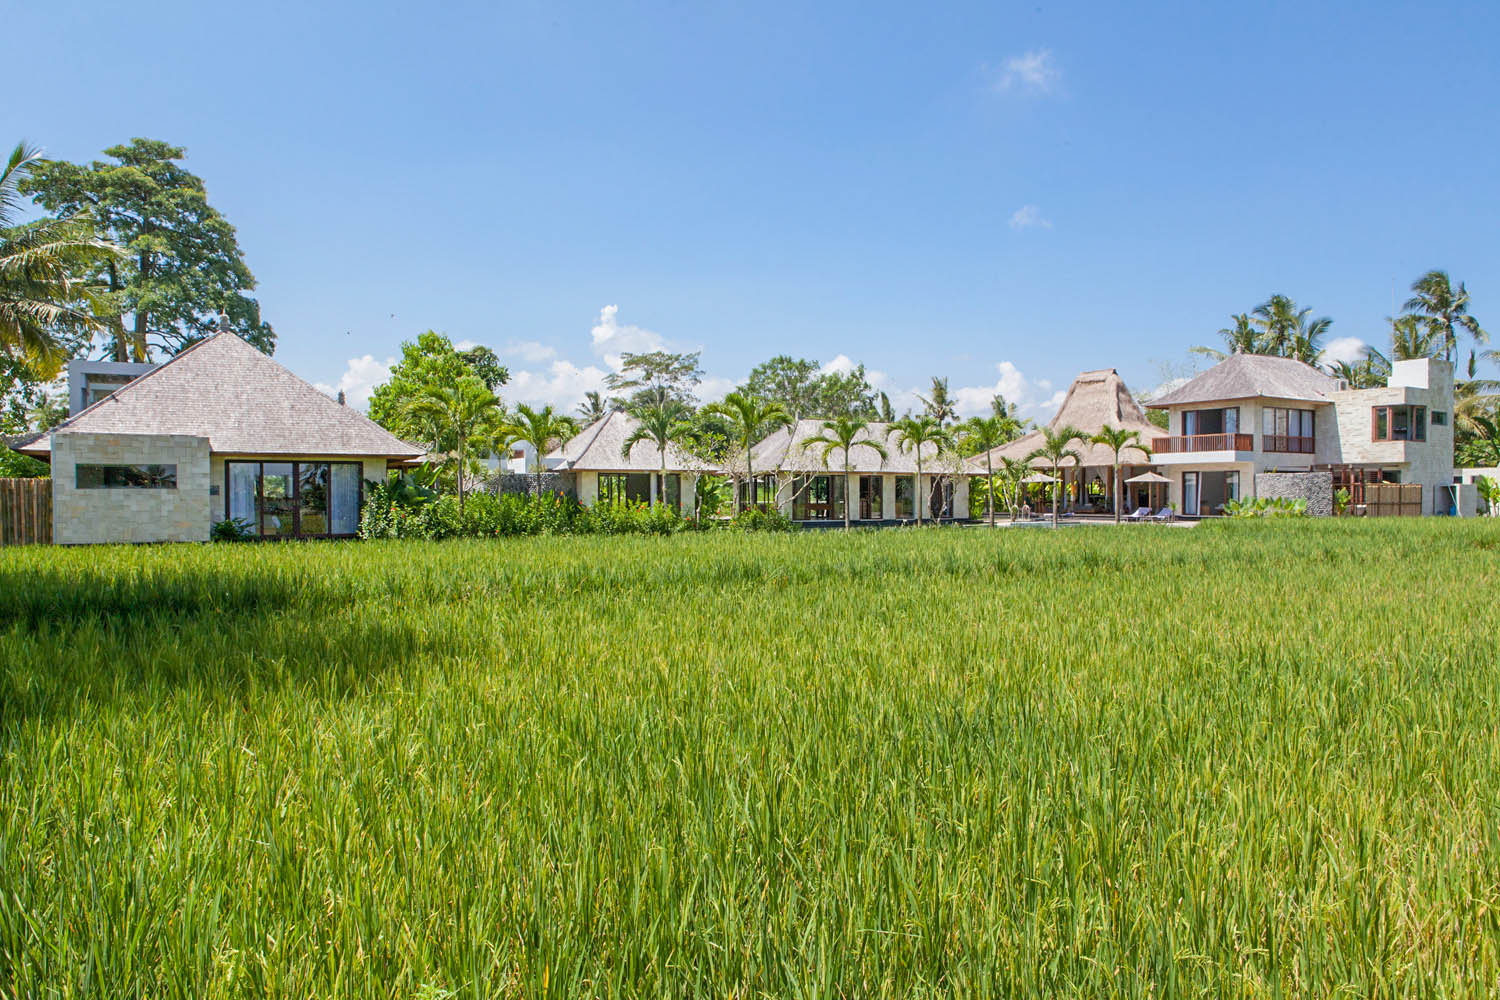 Villa Lumia Bali Overview from the rice fields